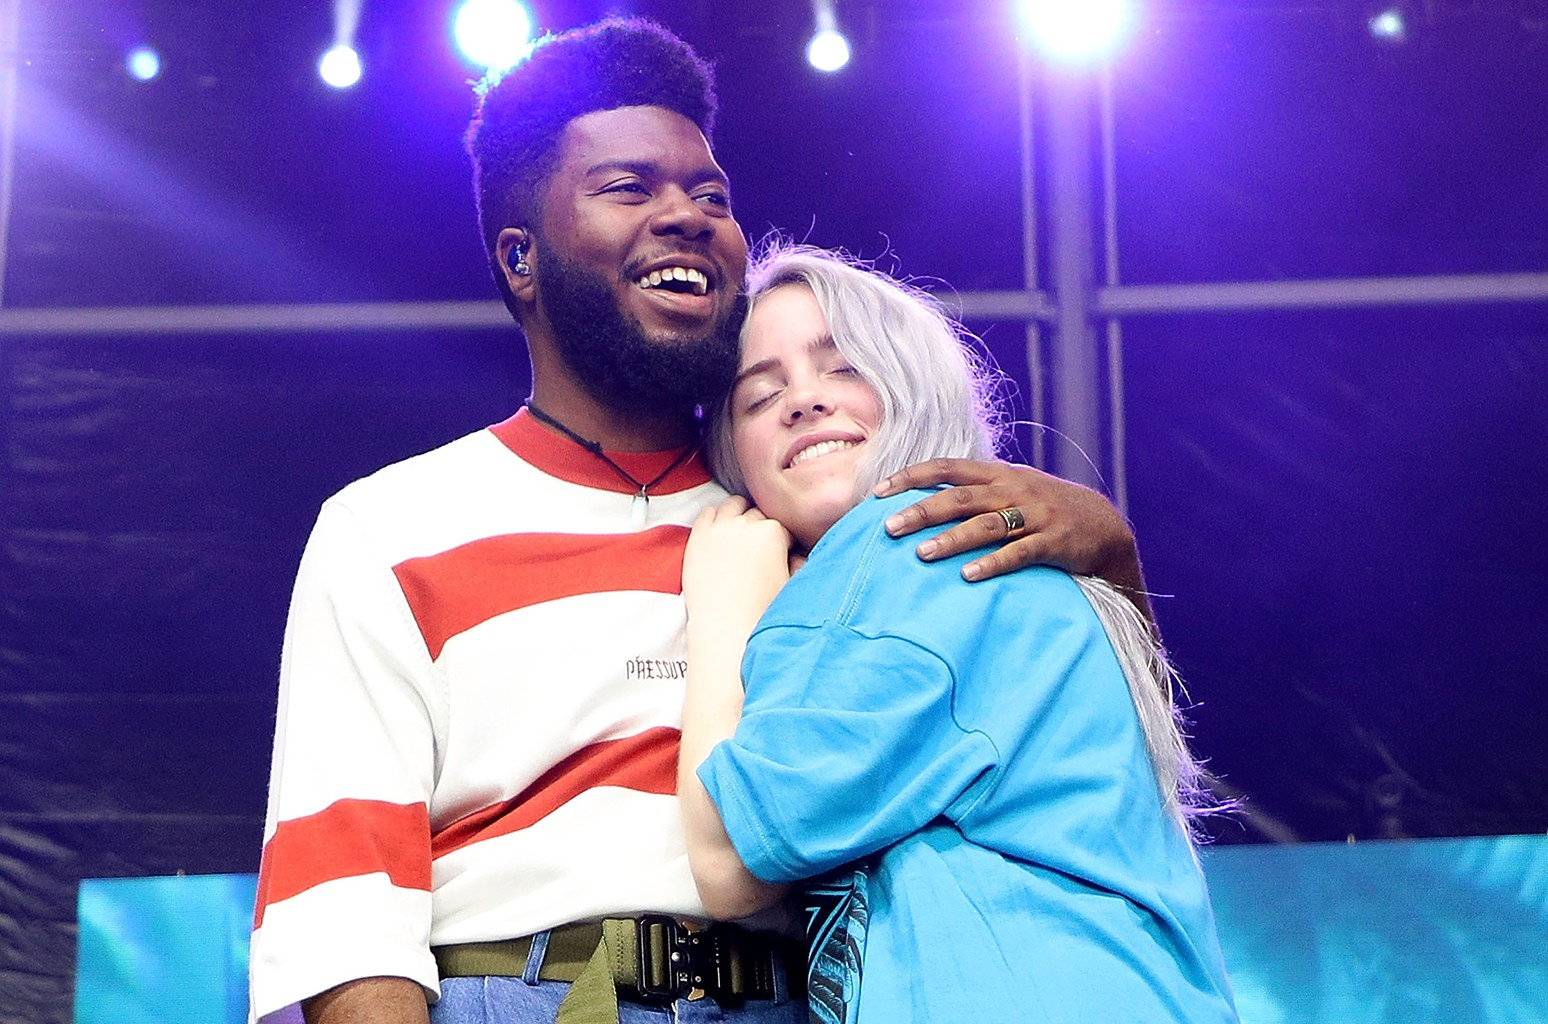 Khalid Billie Eilish